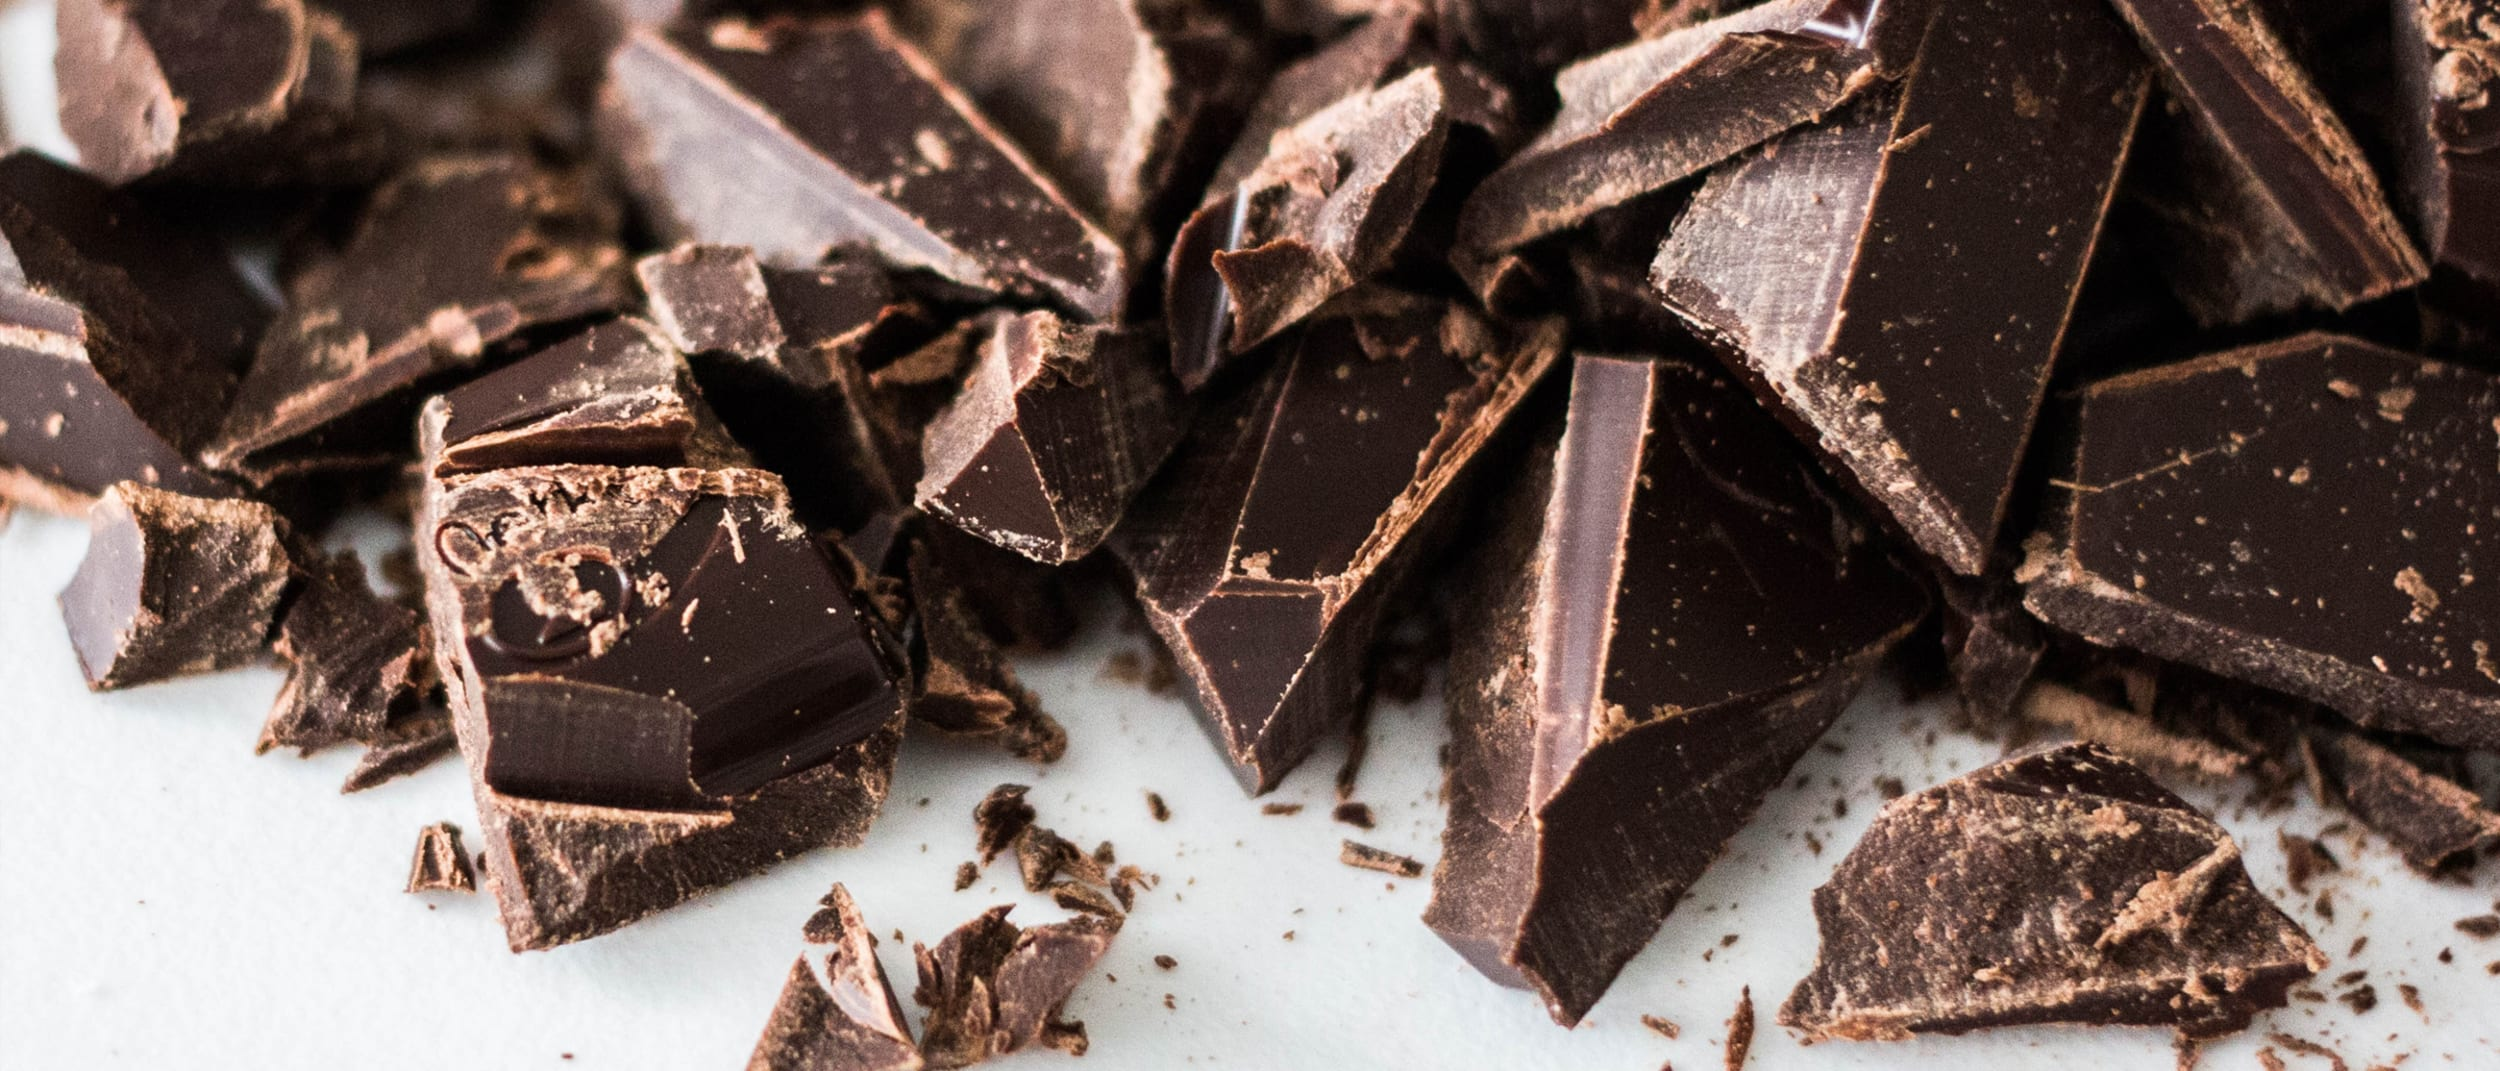 Where to get your chocolate fix